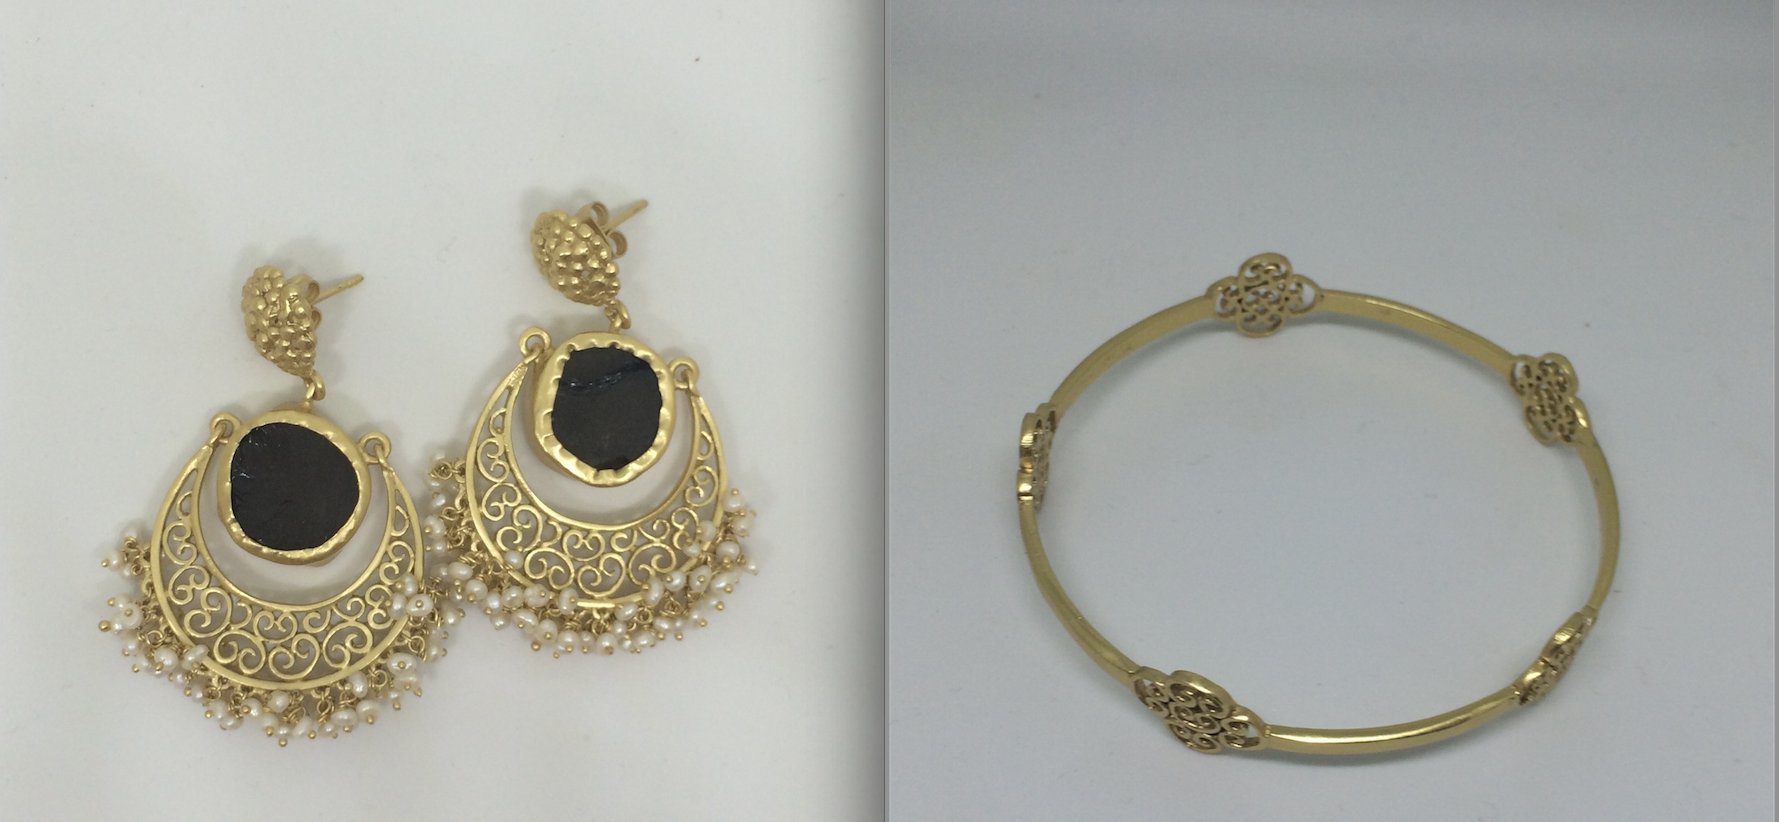 Lovely new items that will be in the shop soon!  So excited!